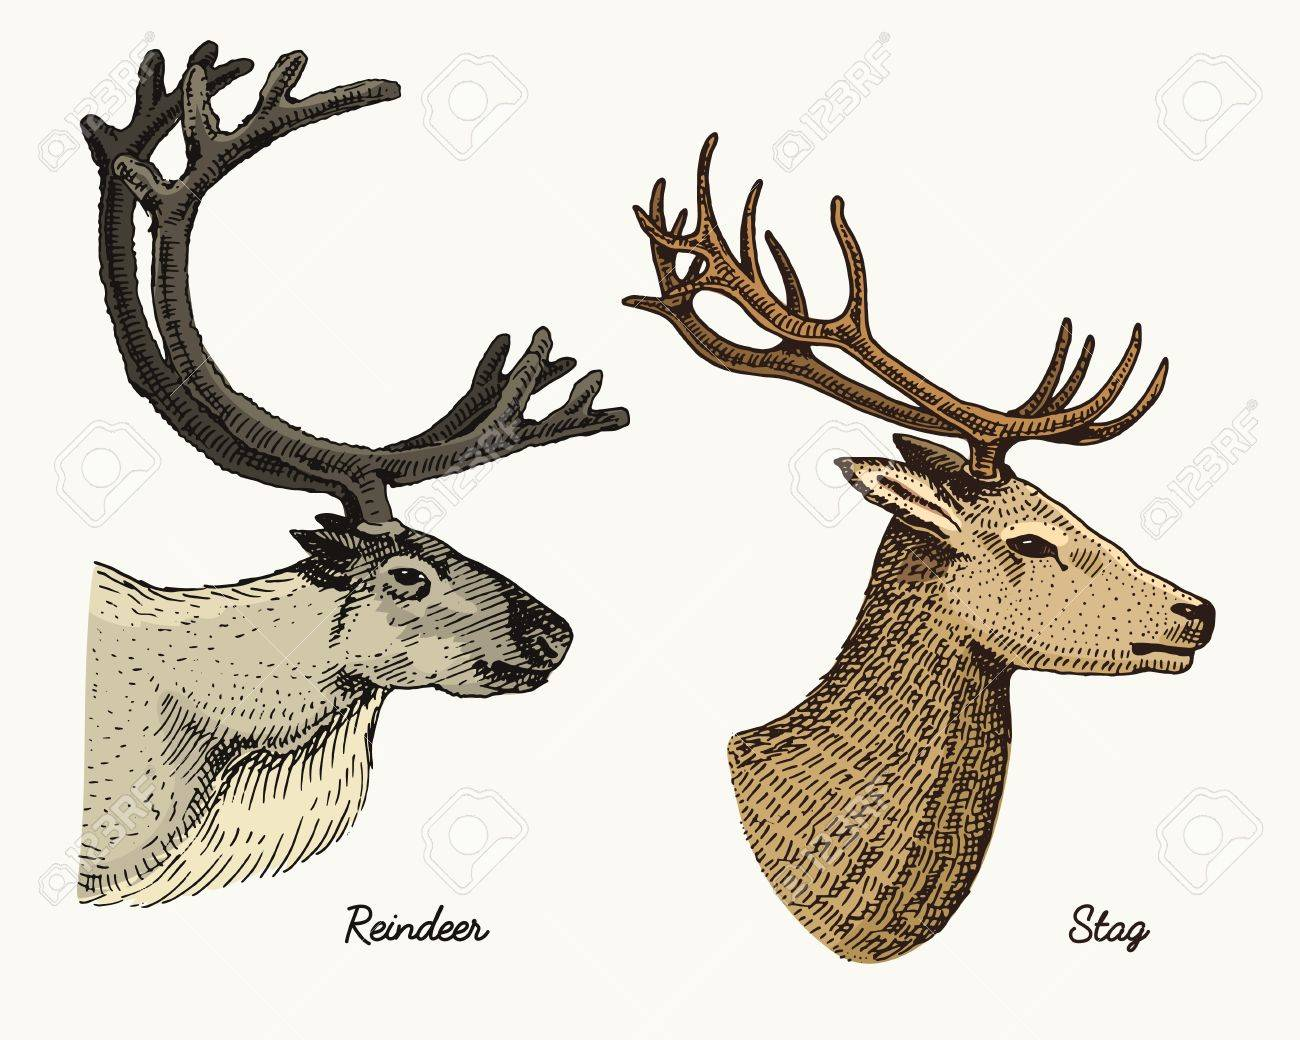 1300x1040 Reindeer And Stag Deer Vector Hand Drawn Illustration, Engraved